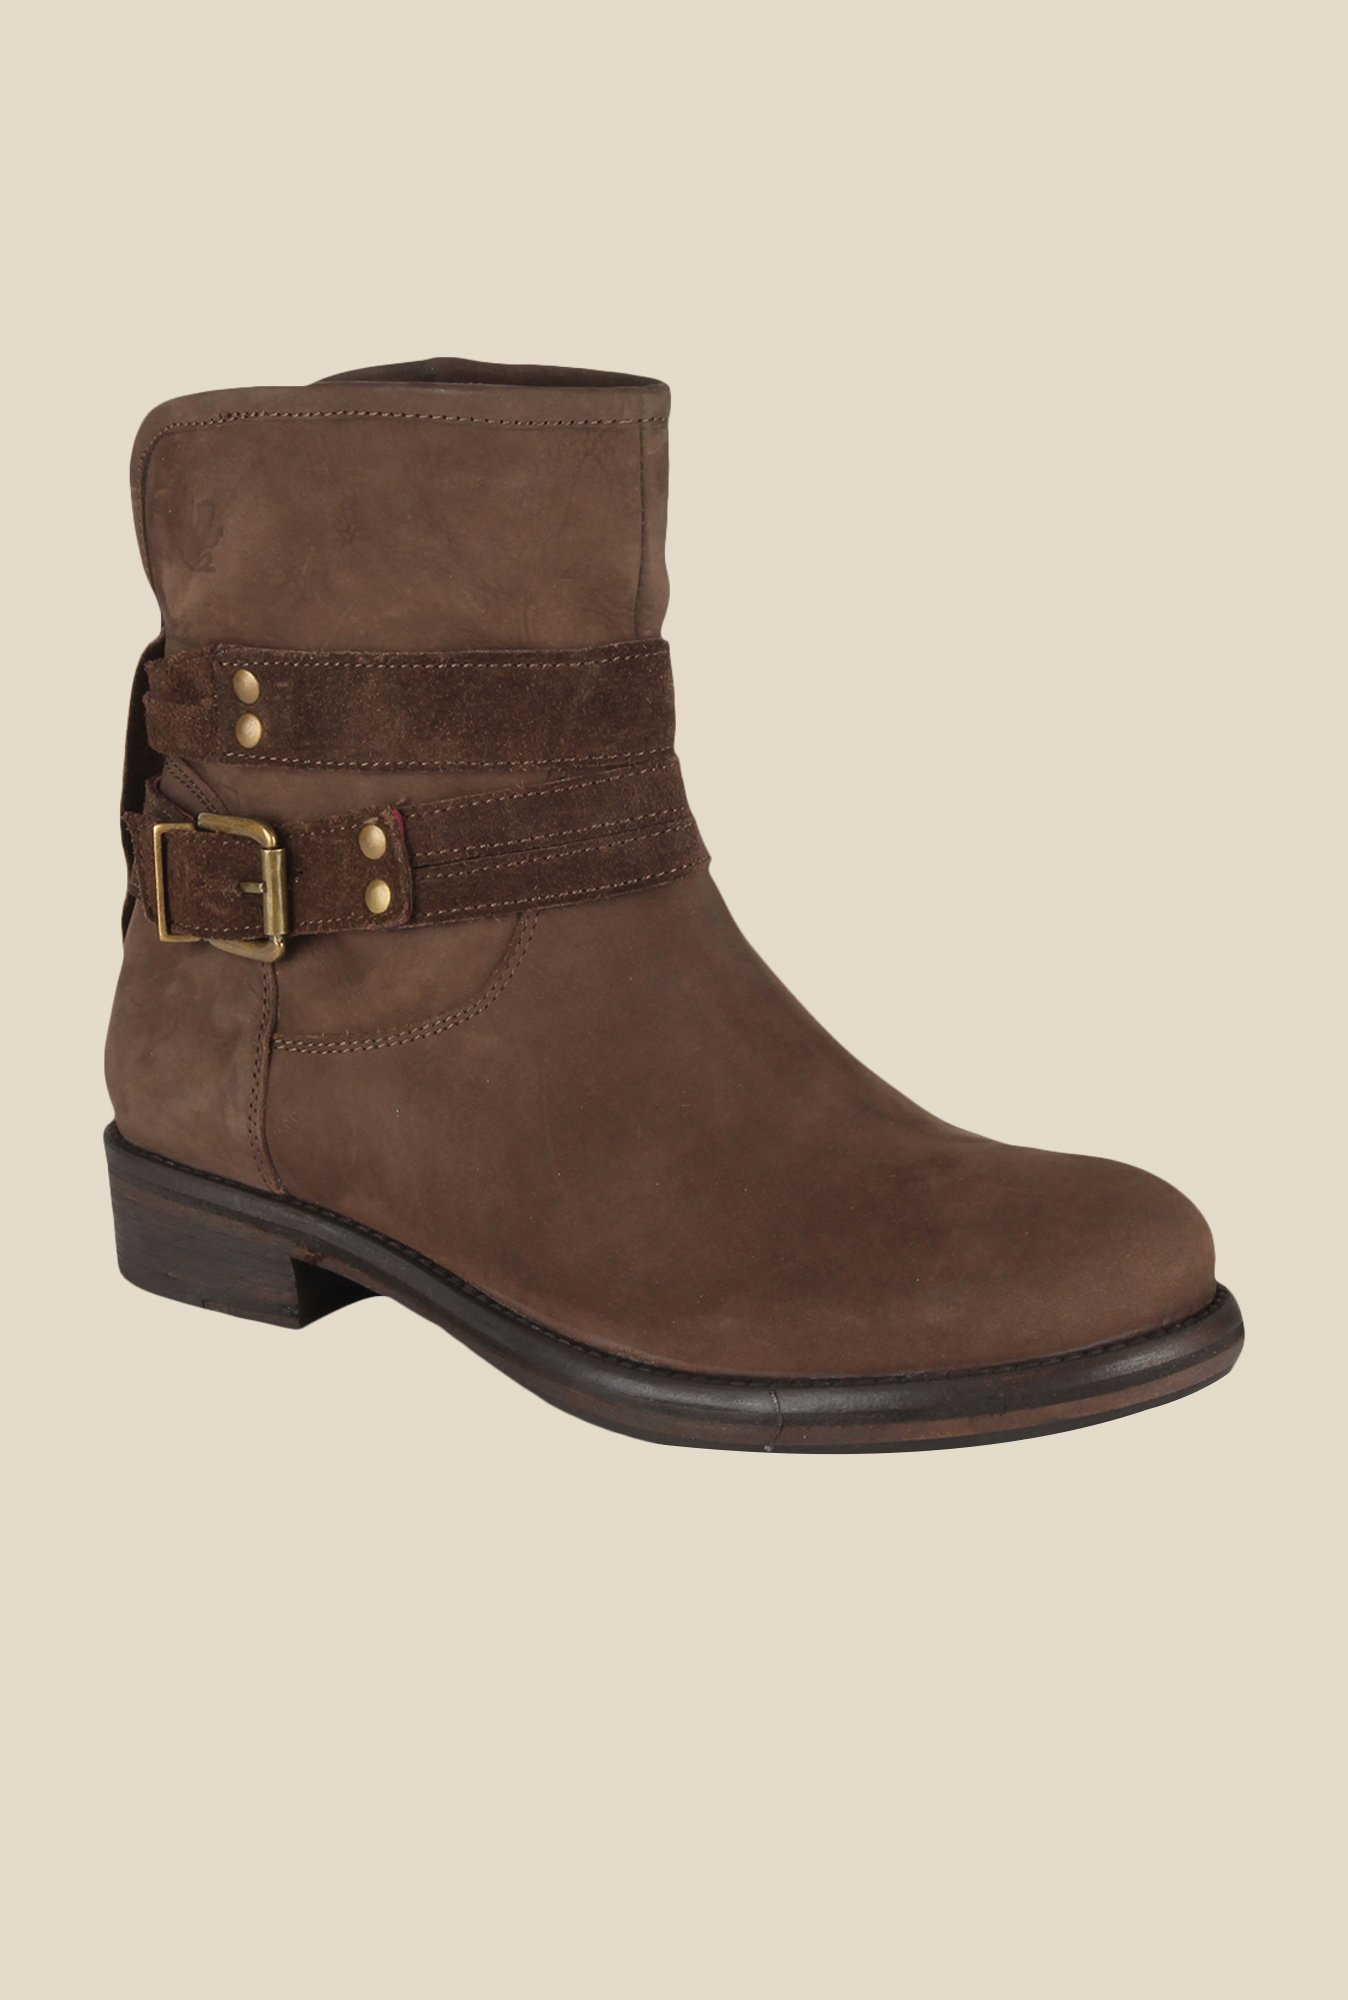 Salt 'n' Pepper Dorothea Brown Casual Boots